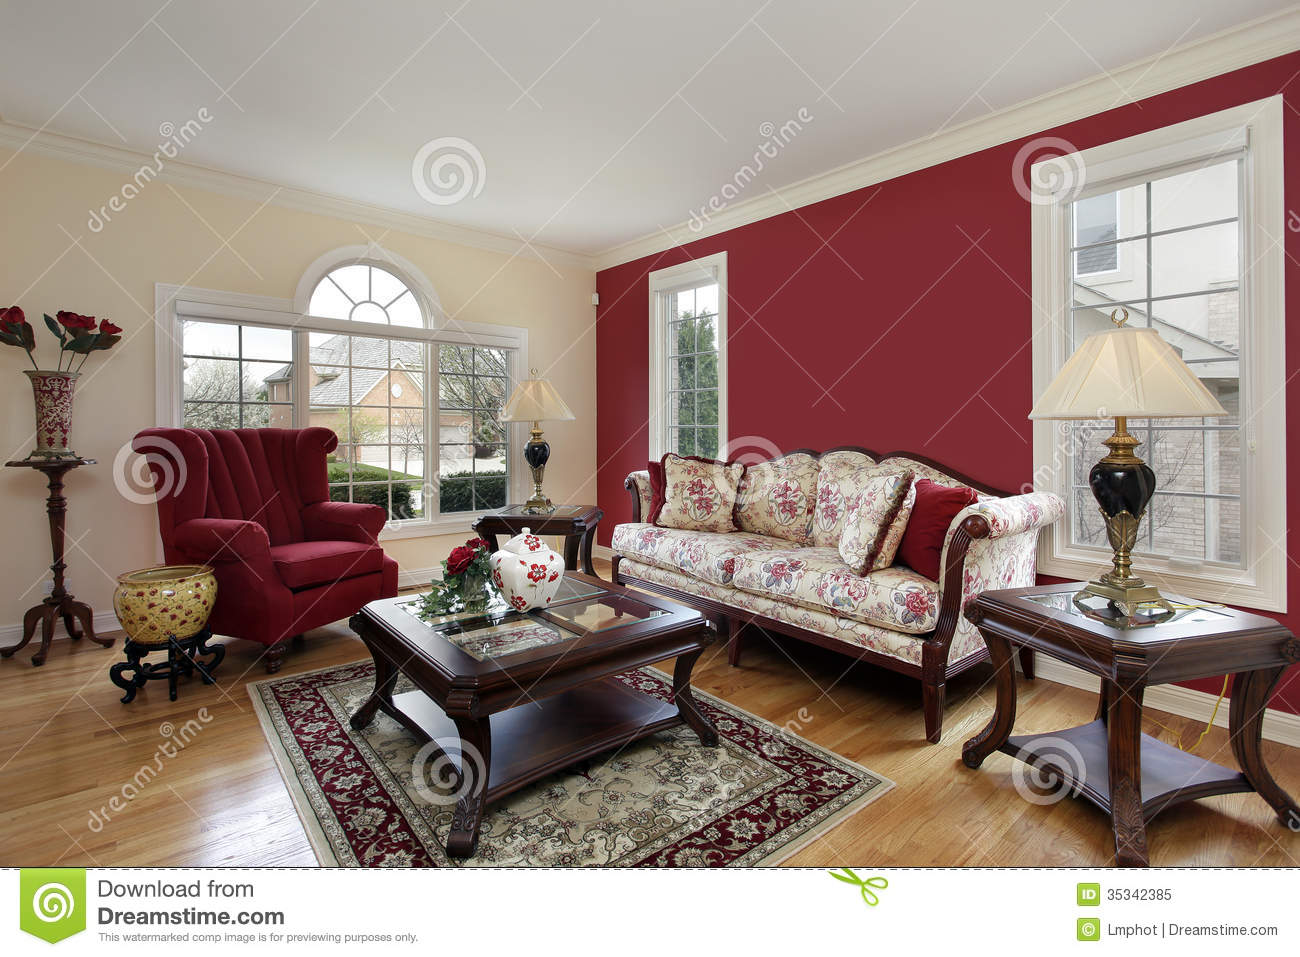 Living room with red and cream colored walls stock image image of home real 35342385 - Living room with cream walls ...